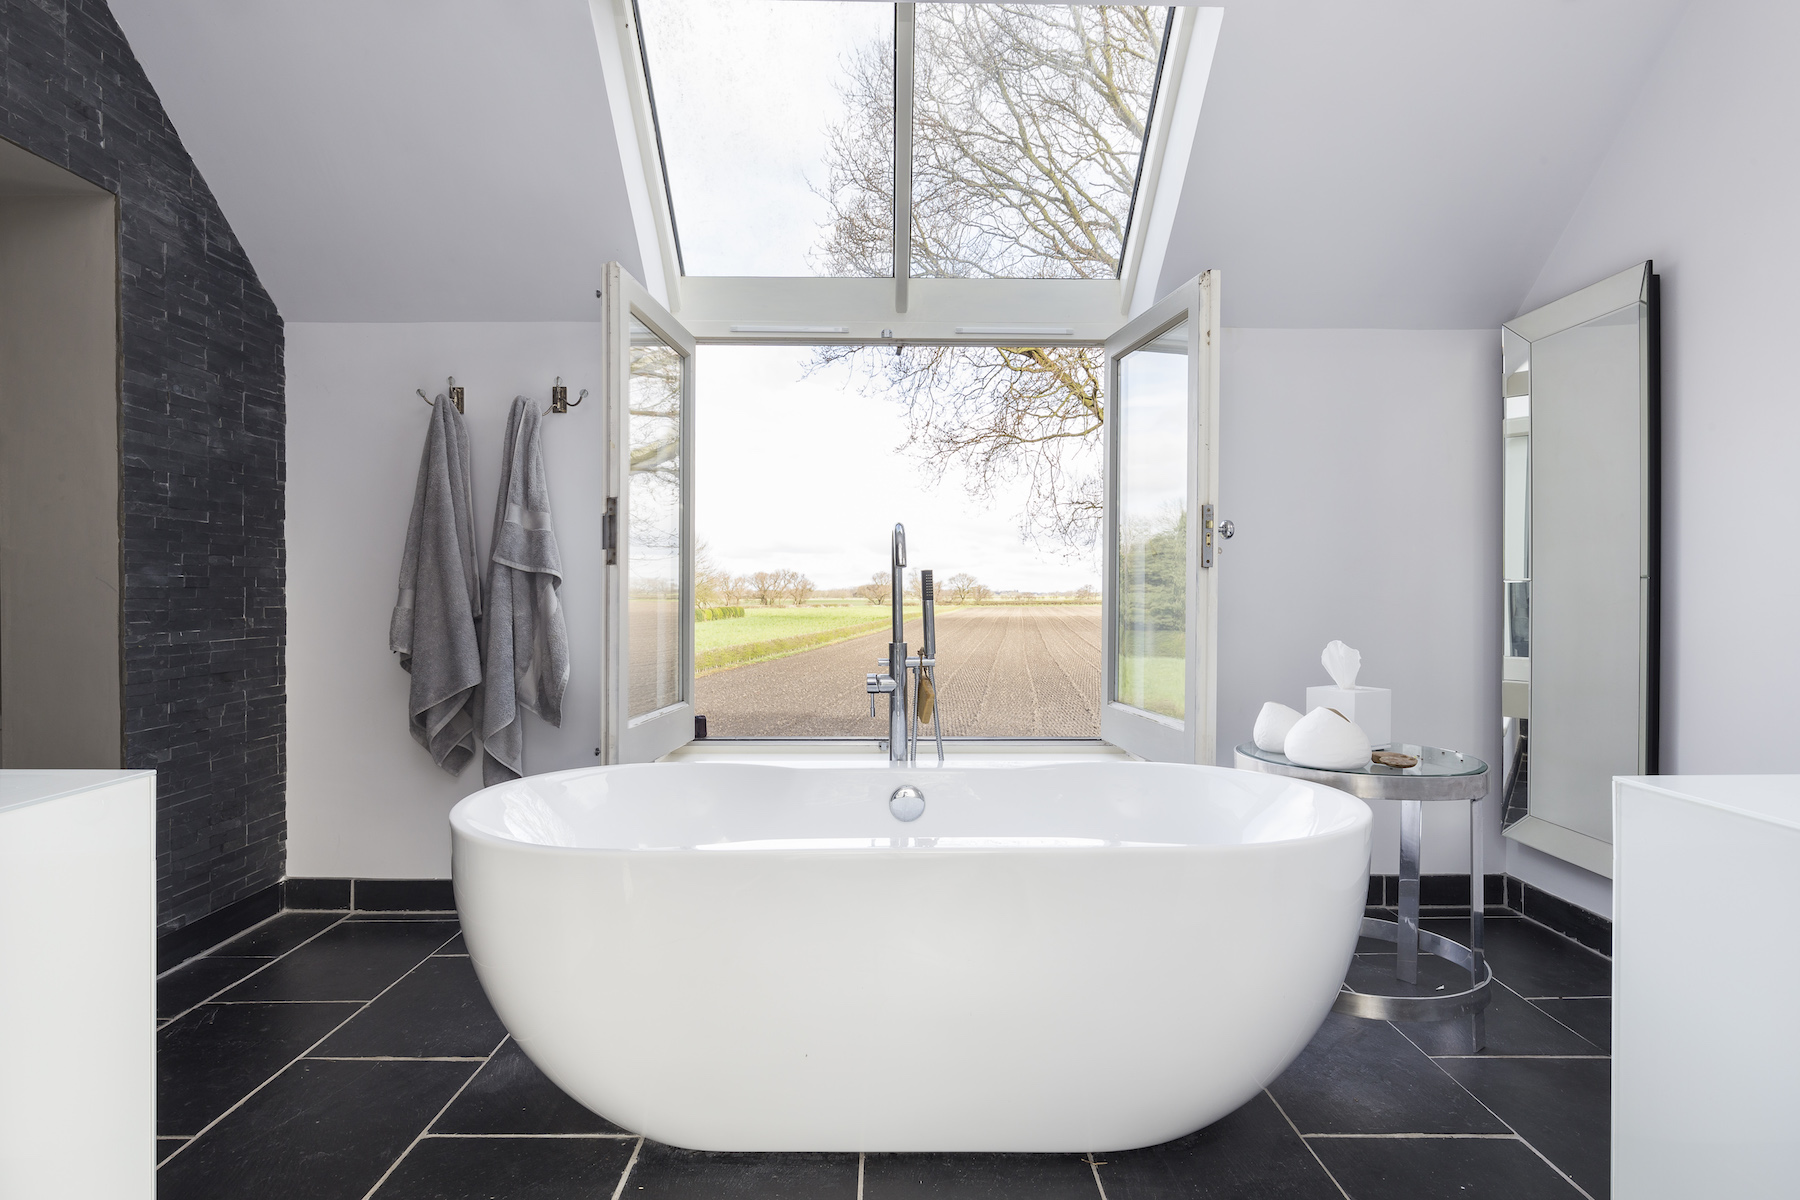 Bathroom Design Trends 2019, Bathtub in beautiful bathroom with view